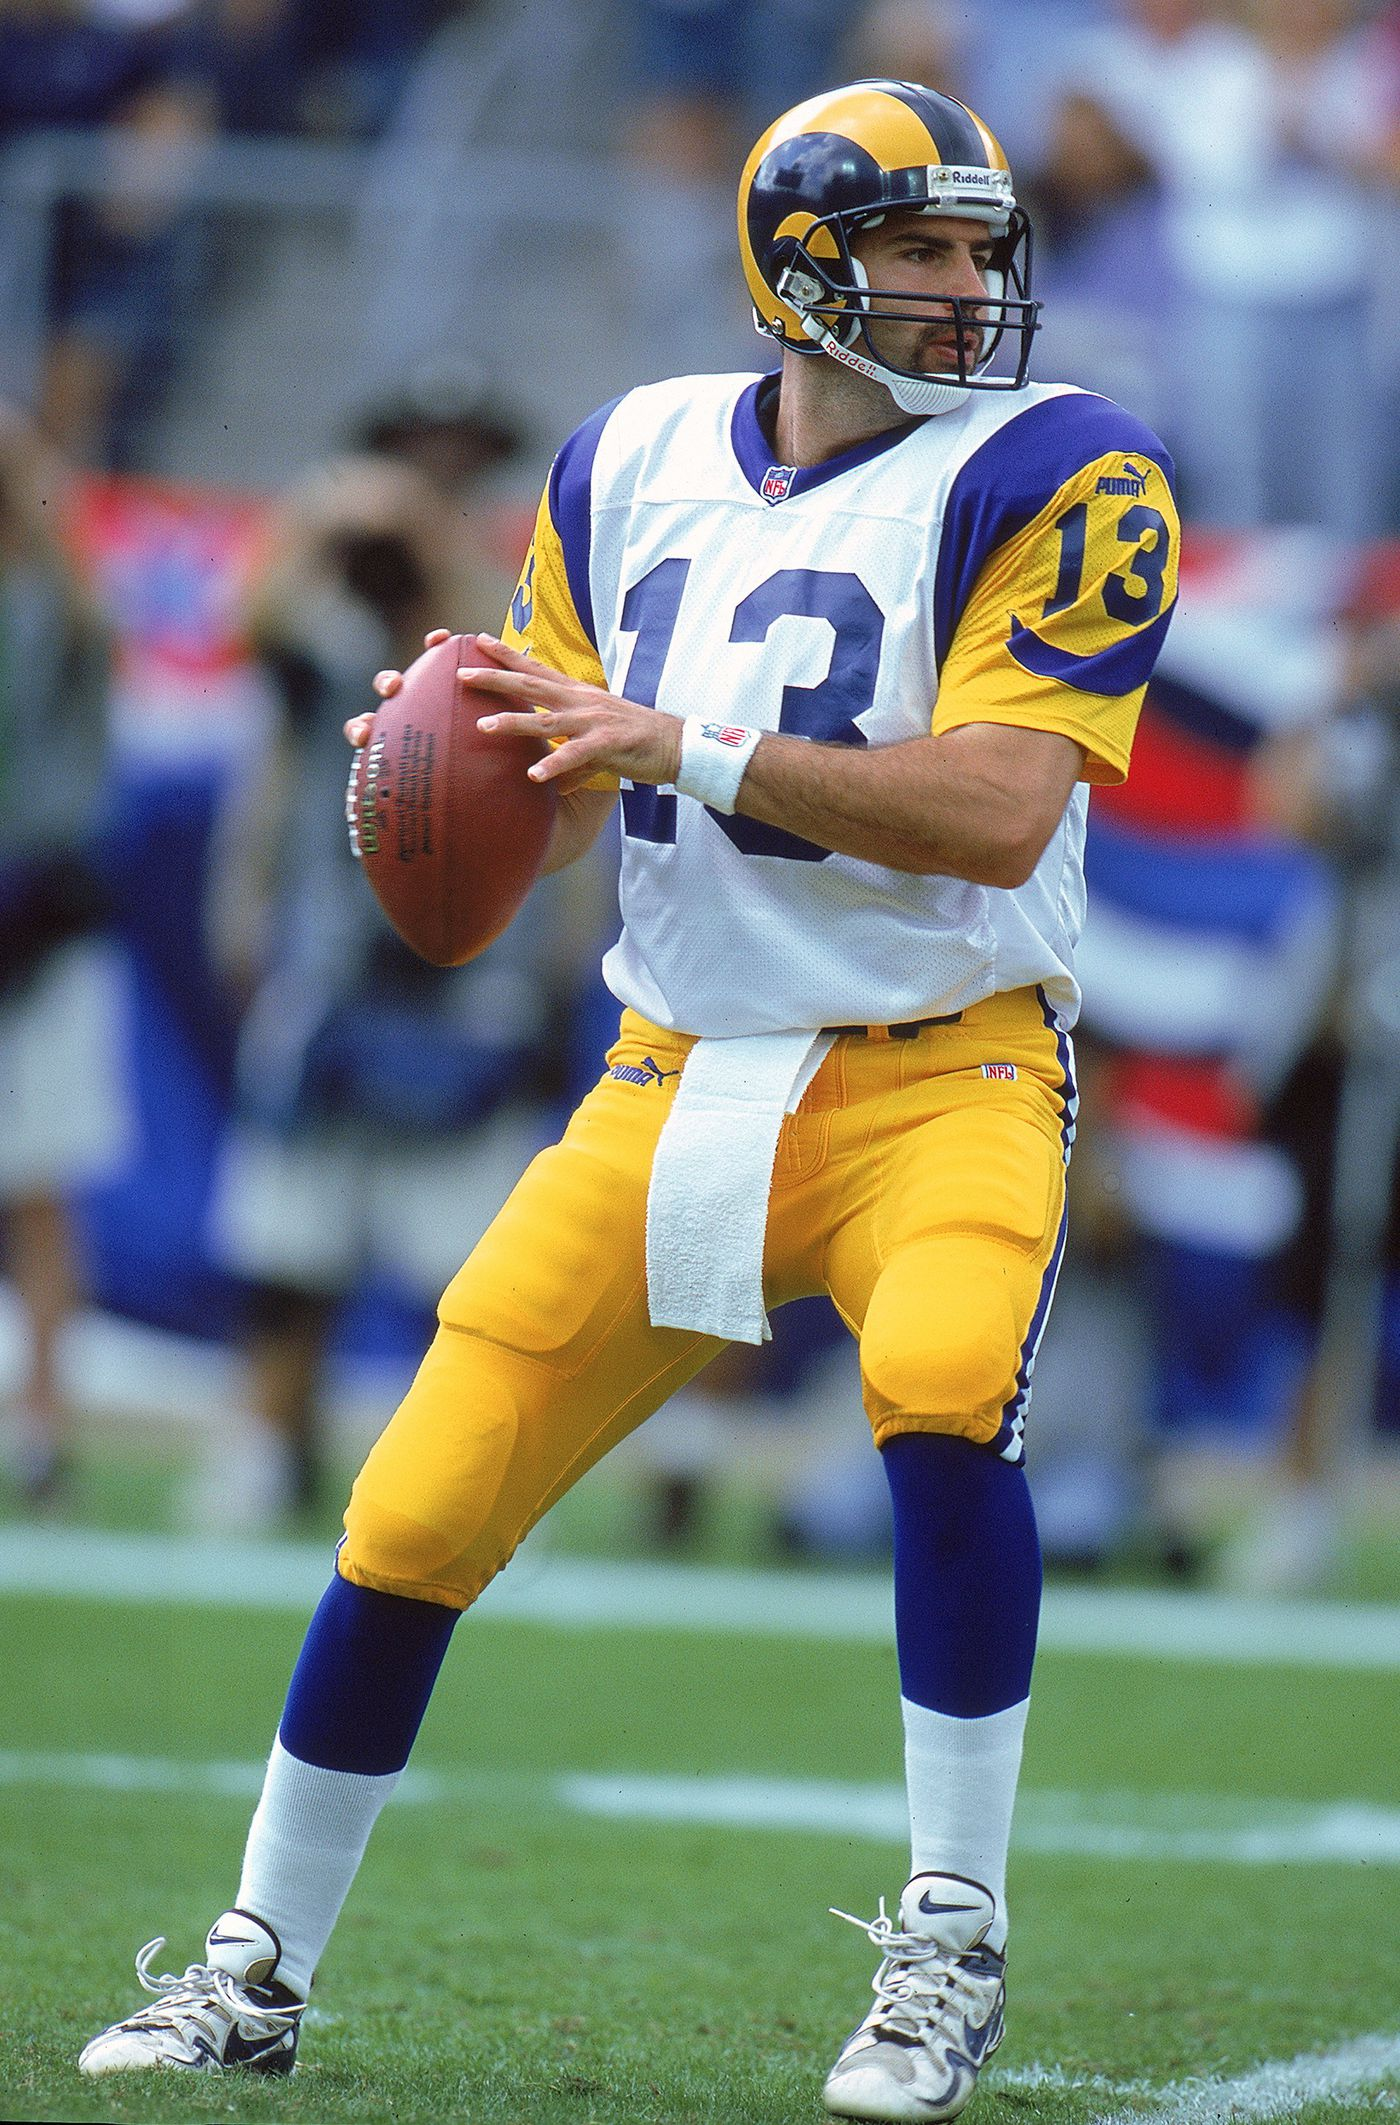 lowest price 8ba5e e8552 Super Bowl 2019: The Rams will wear blue, yellow throwbacks ...